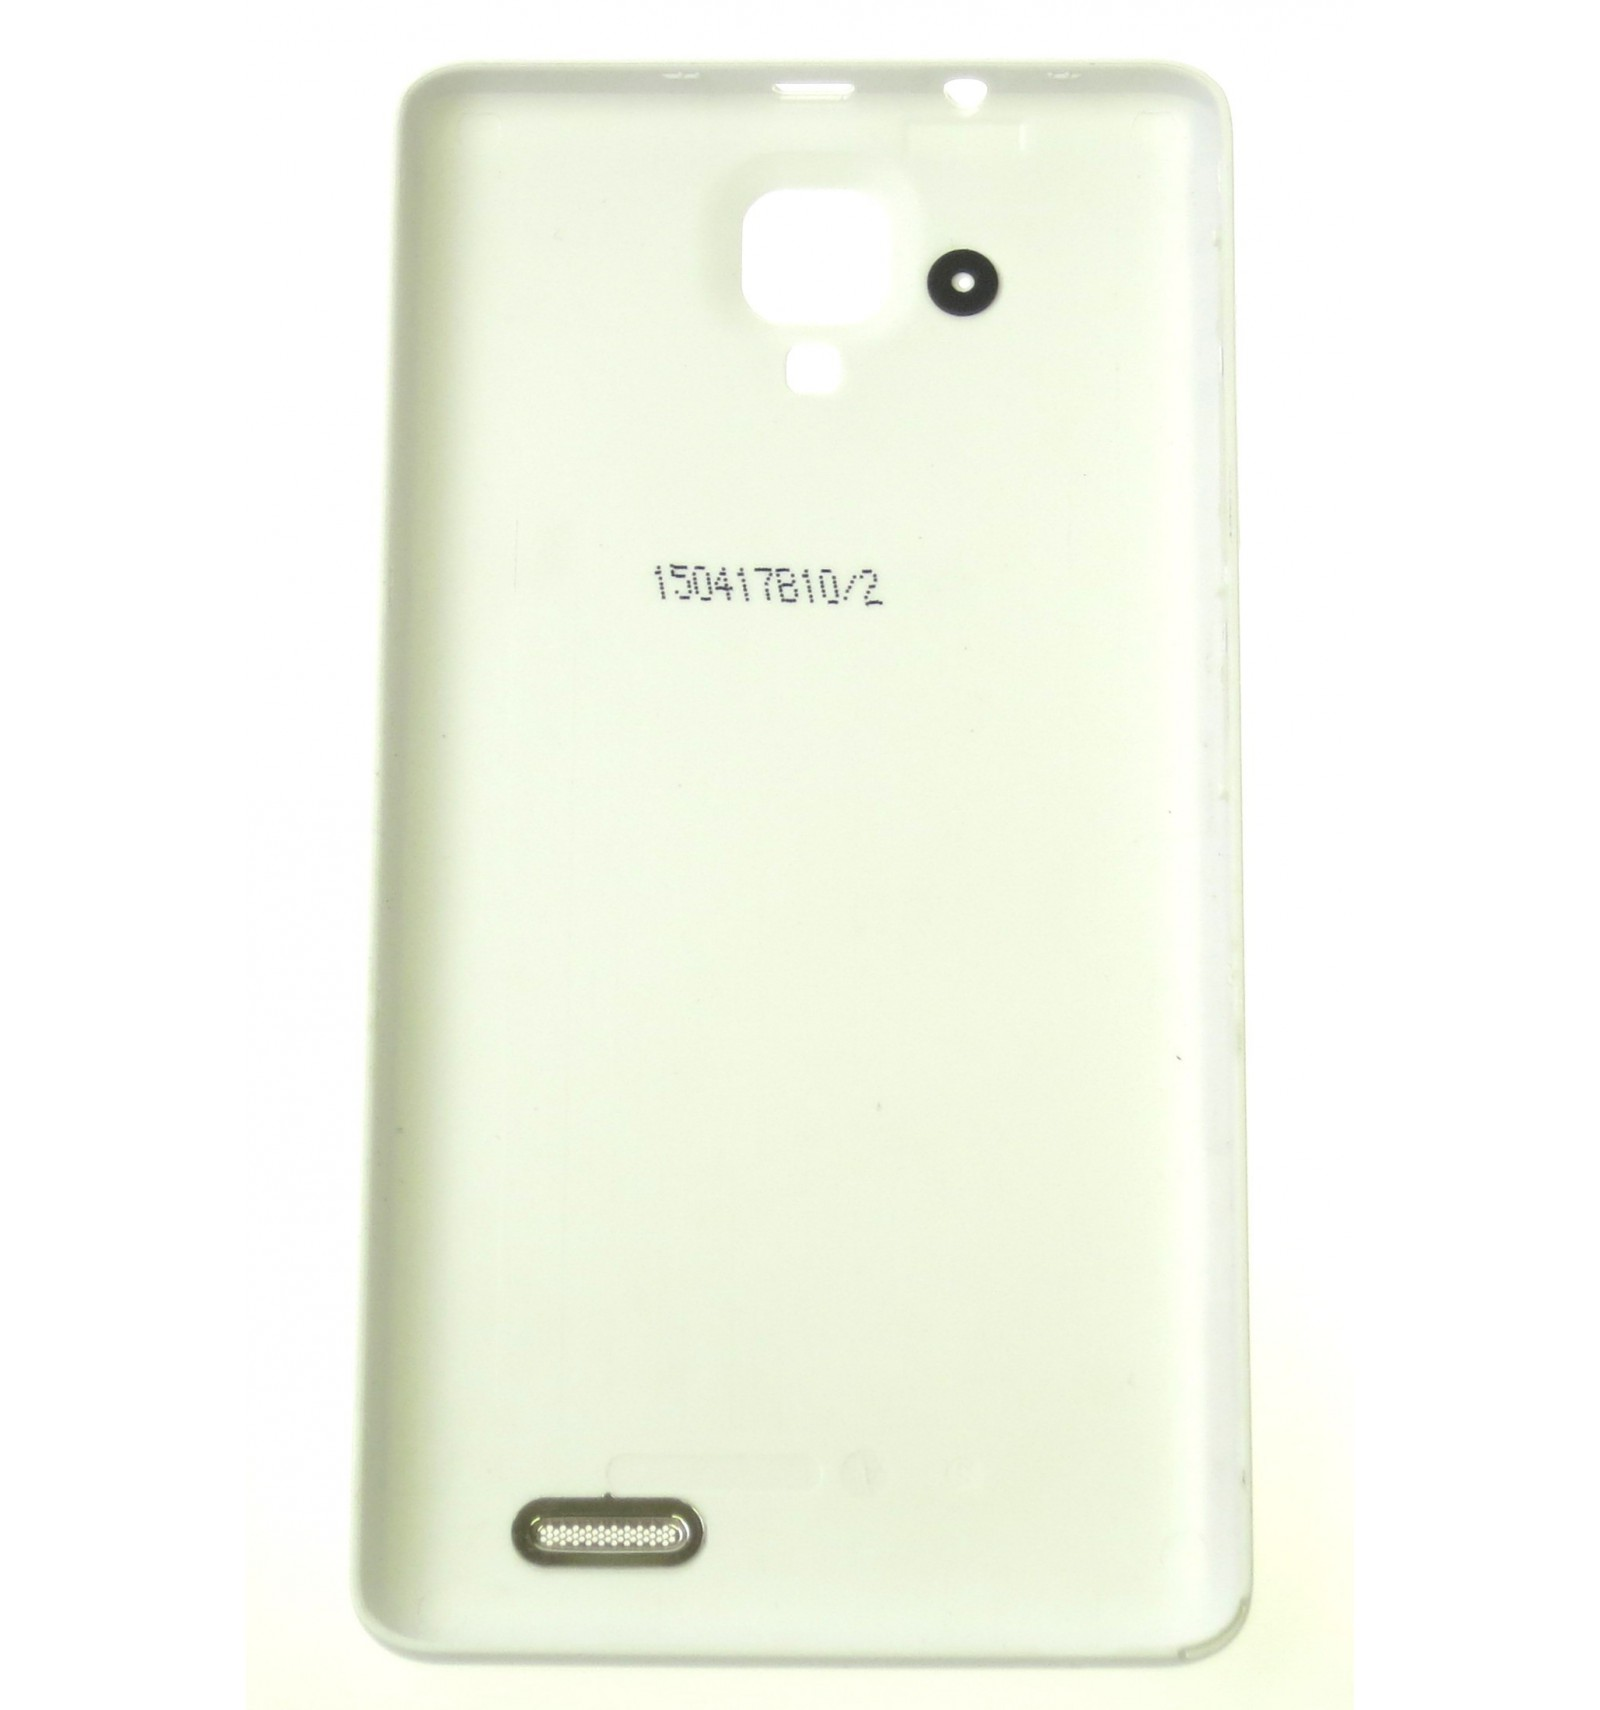 half off 8224a f381e Battery cover white replacement for Lenovo A536 | lcdpartner.com